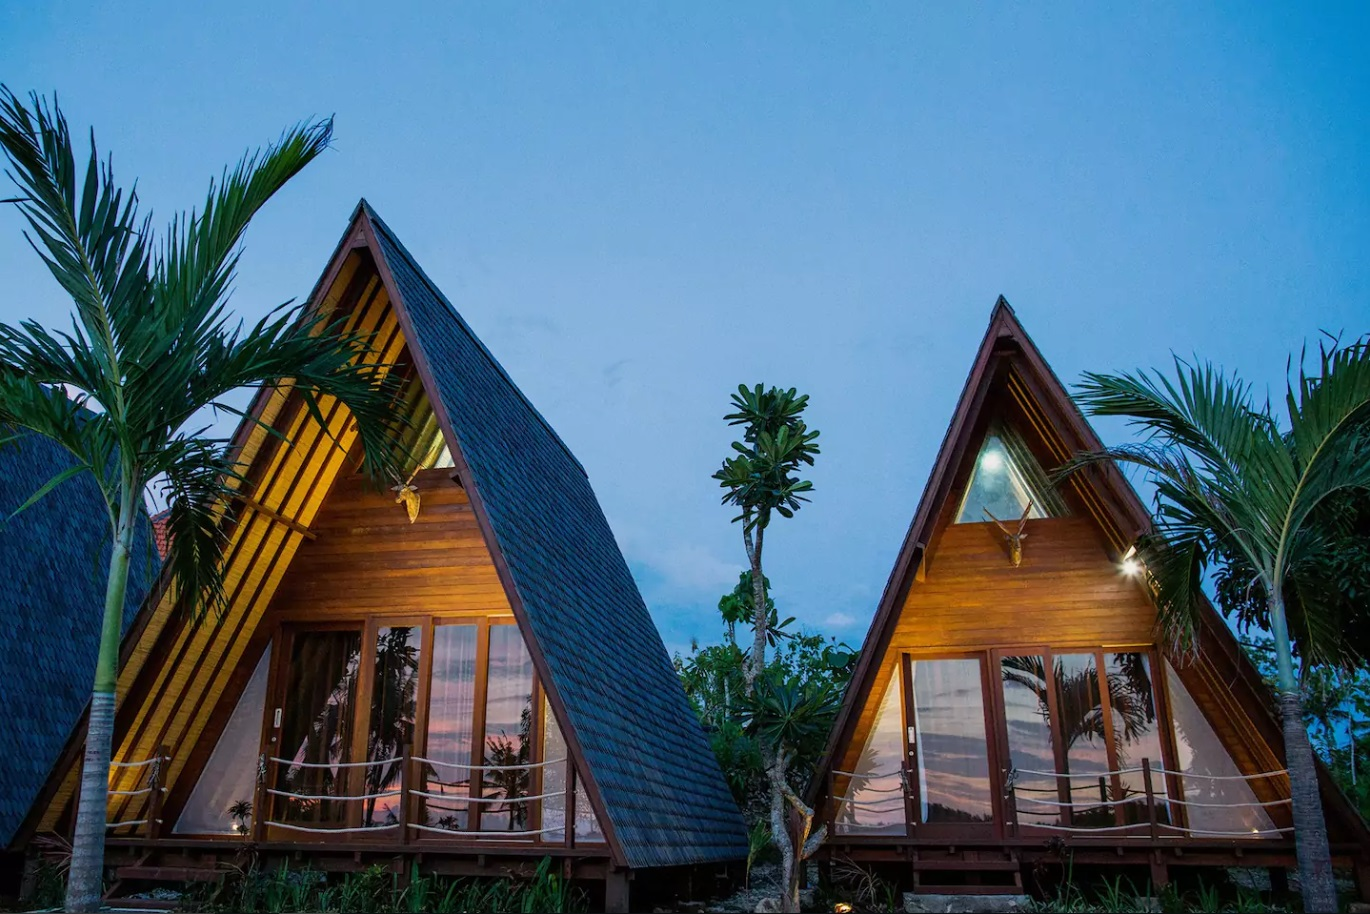 Luxurious cottages for the luxurious you.